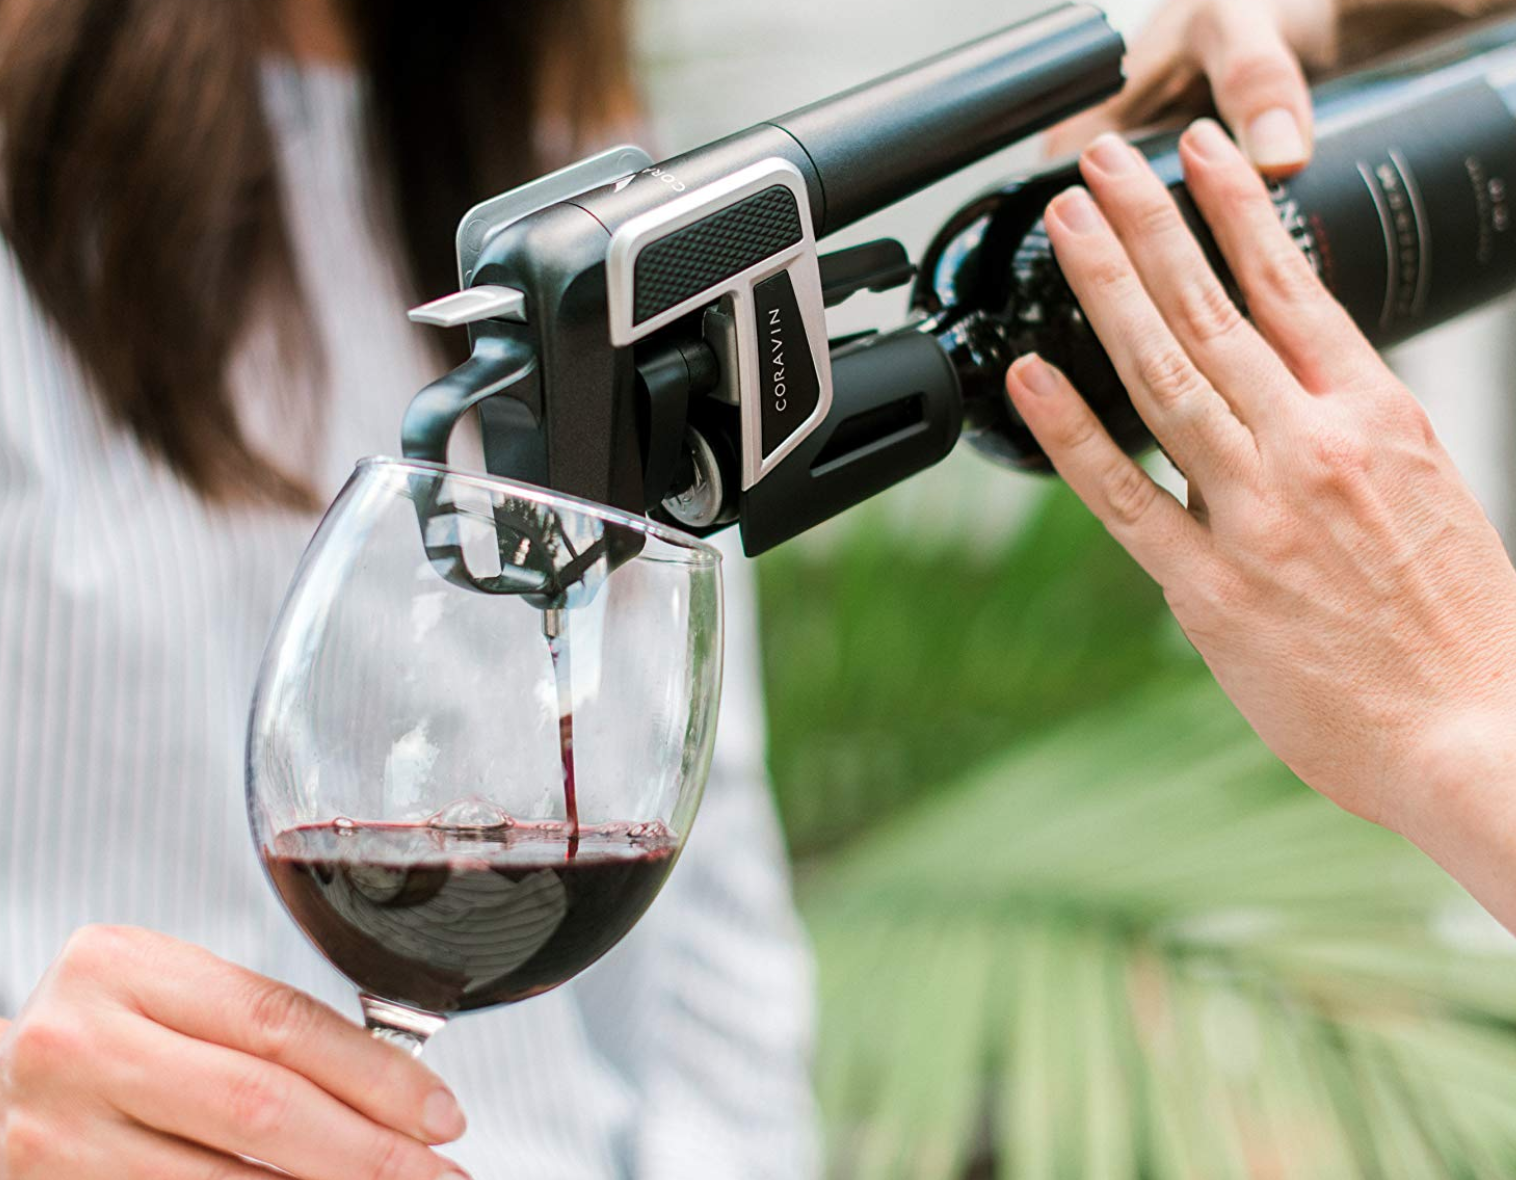 the Coravin wine preserver pouring wine into a glass